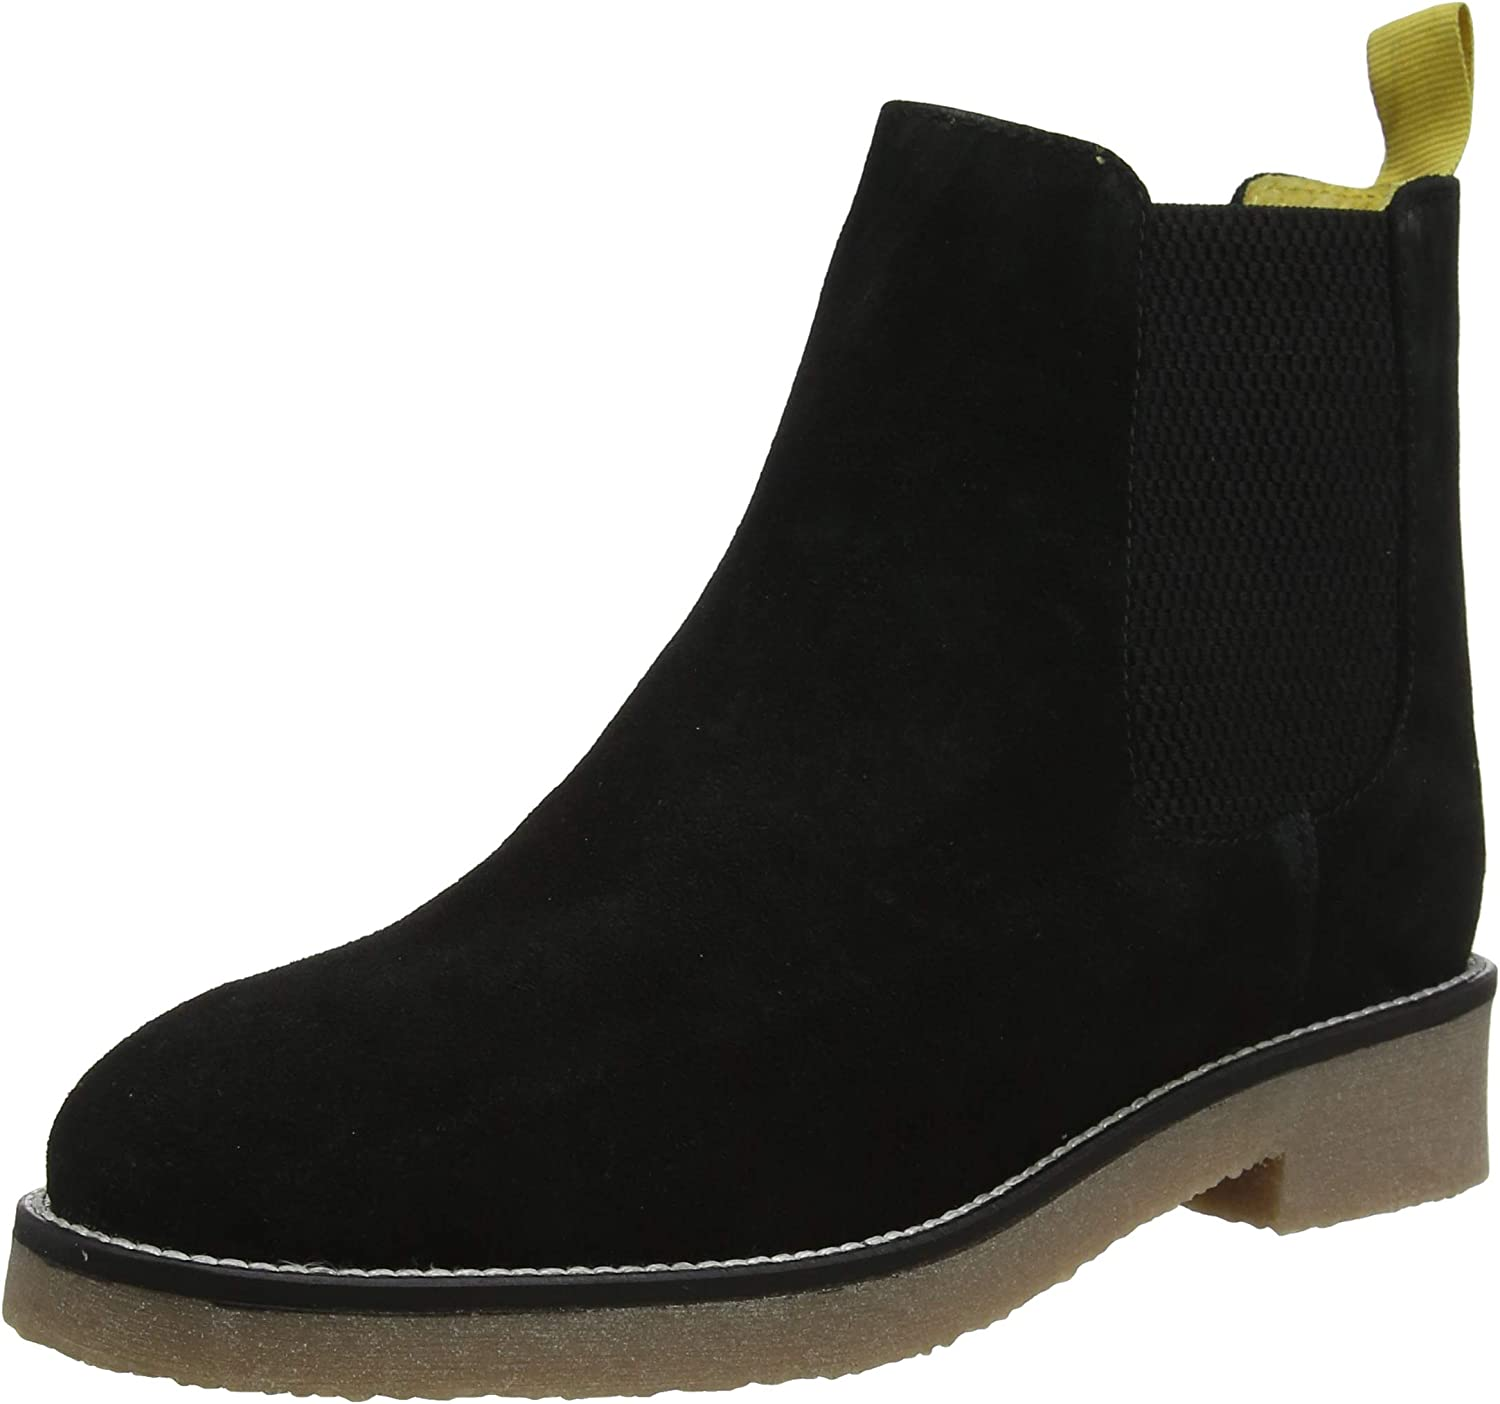 Joules Womens Chepstow Chelsea Boots Tan